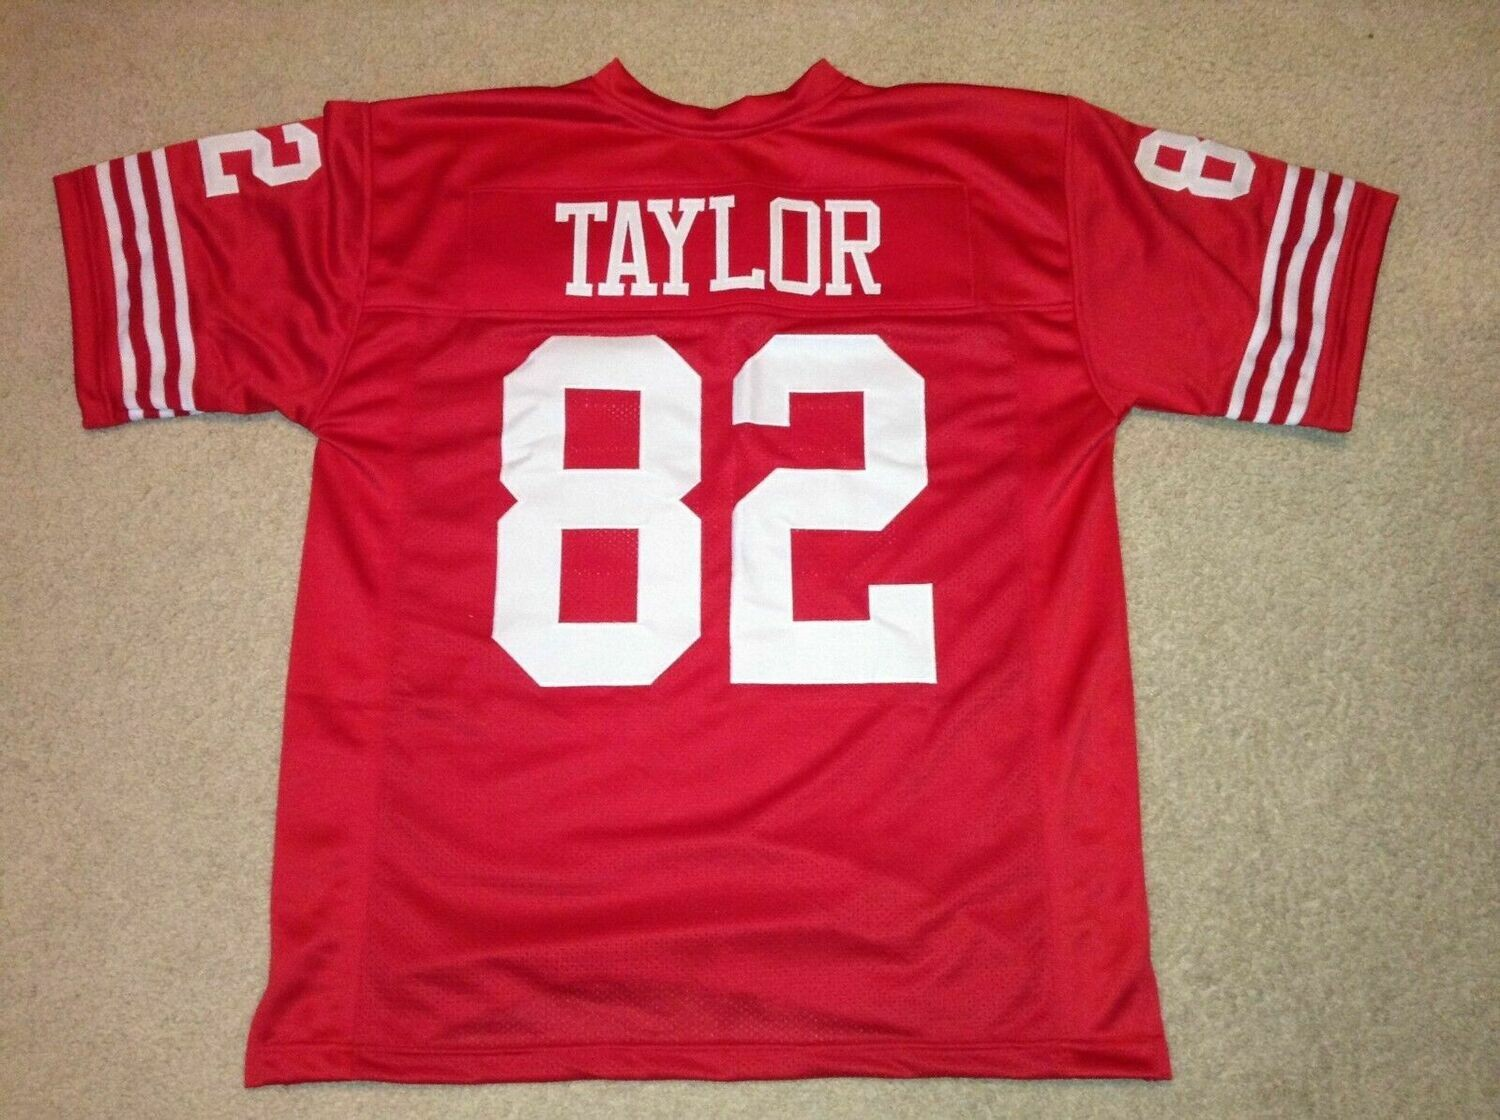 UNSIGNED CUSTOM Sewn Stitched John Taylor Red Jersey